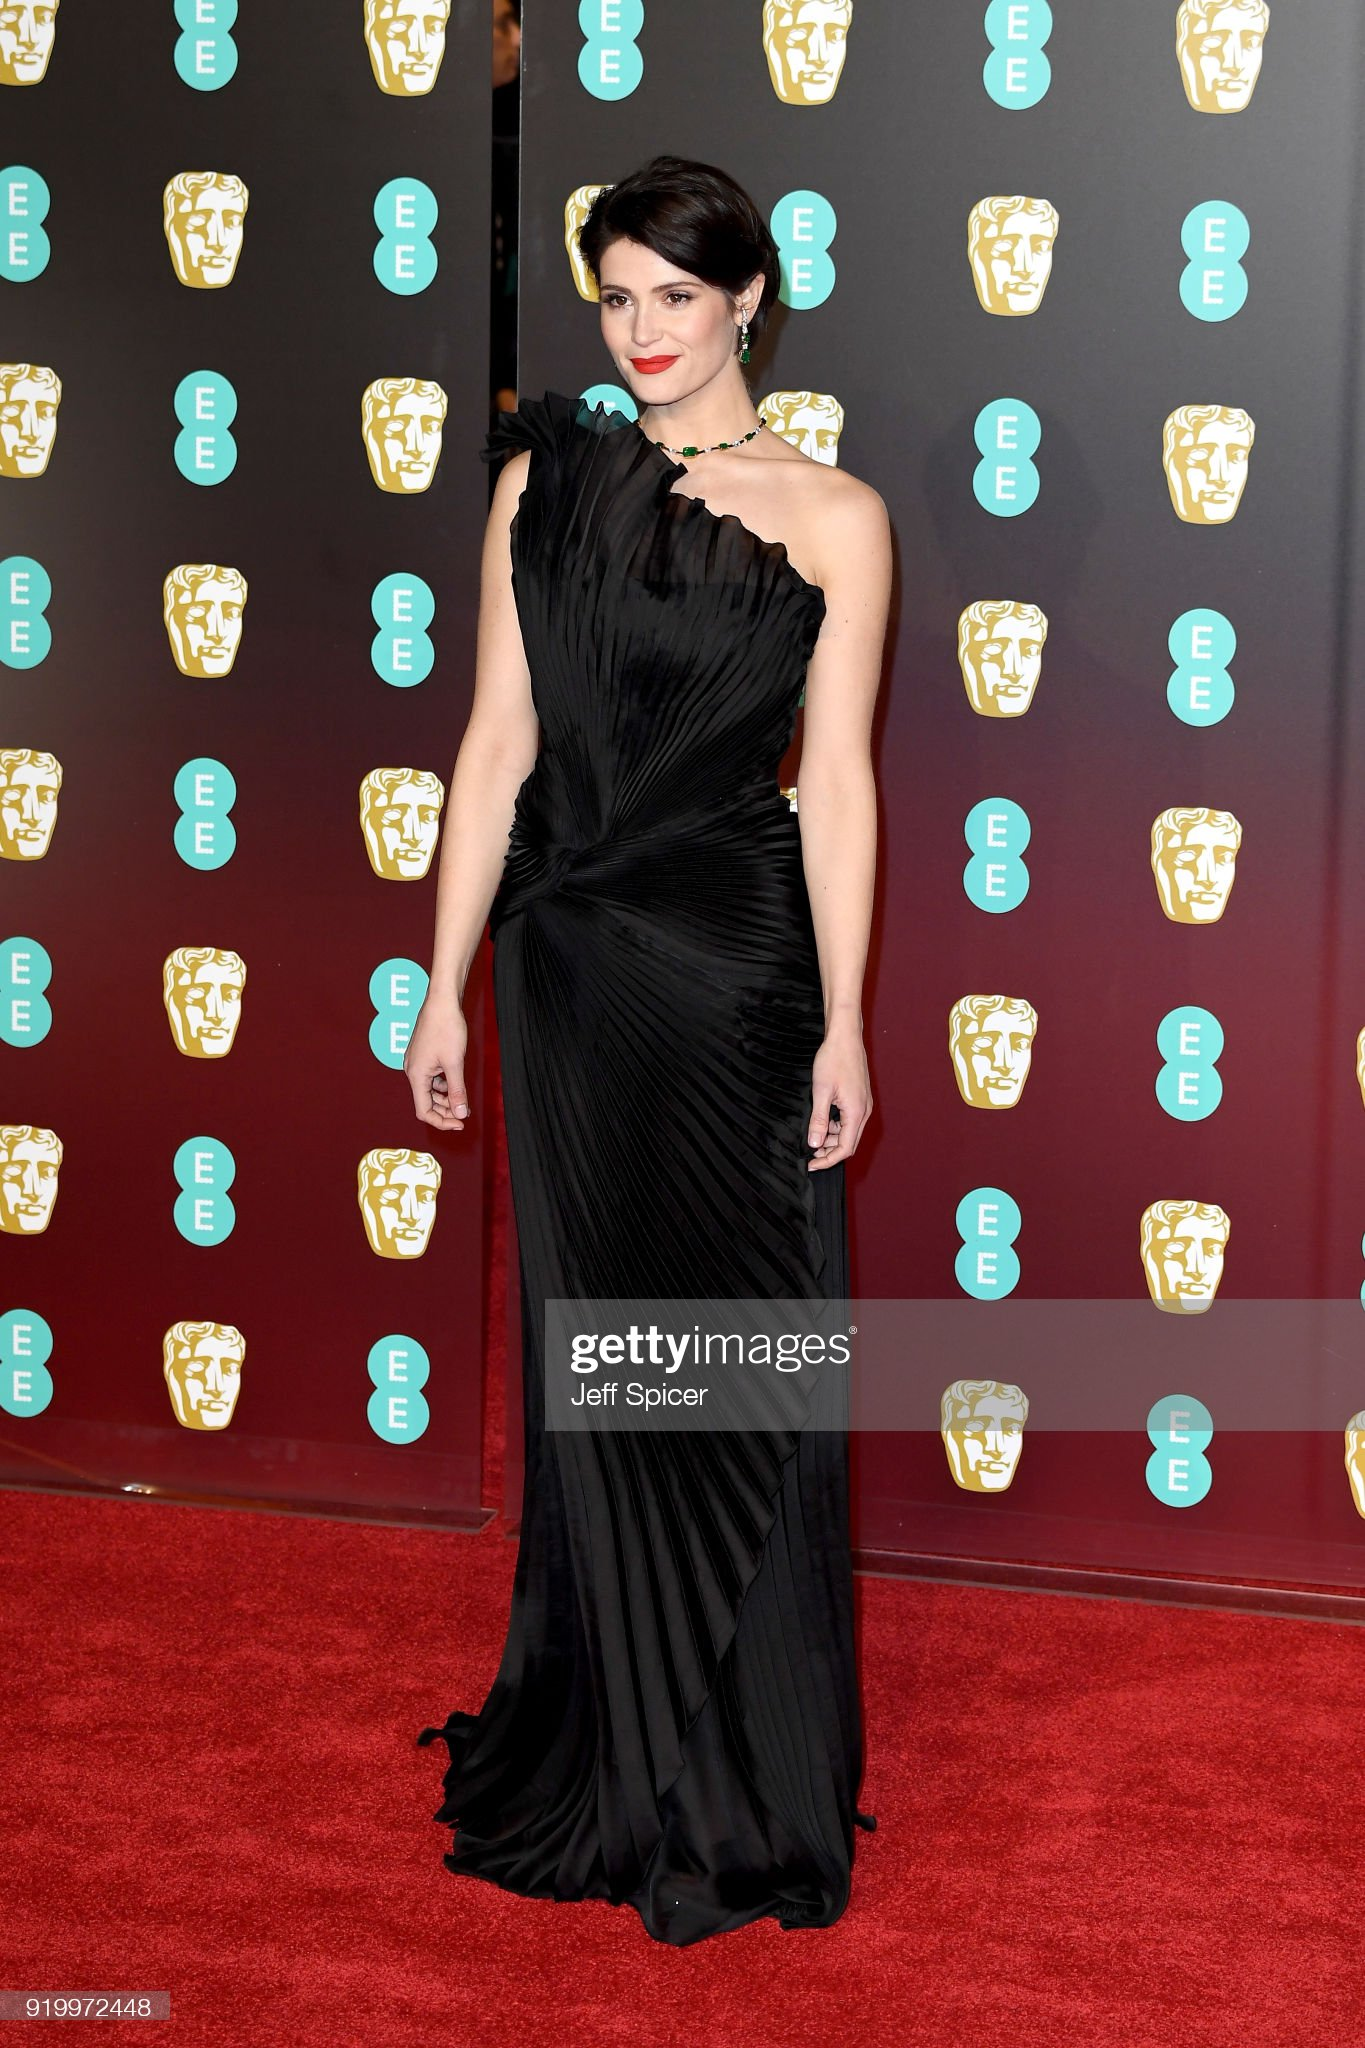 gemma-arterton-attends-the-ee-british-academy-film-awards-held-at-picture-id919972448